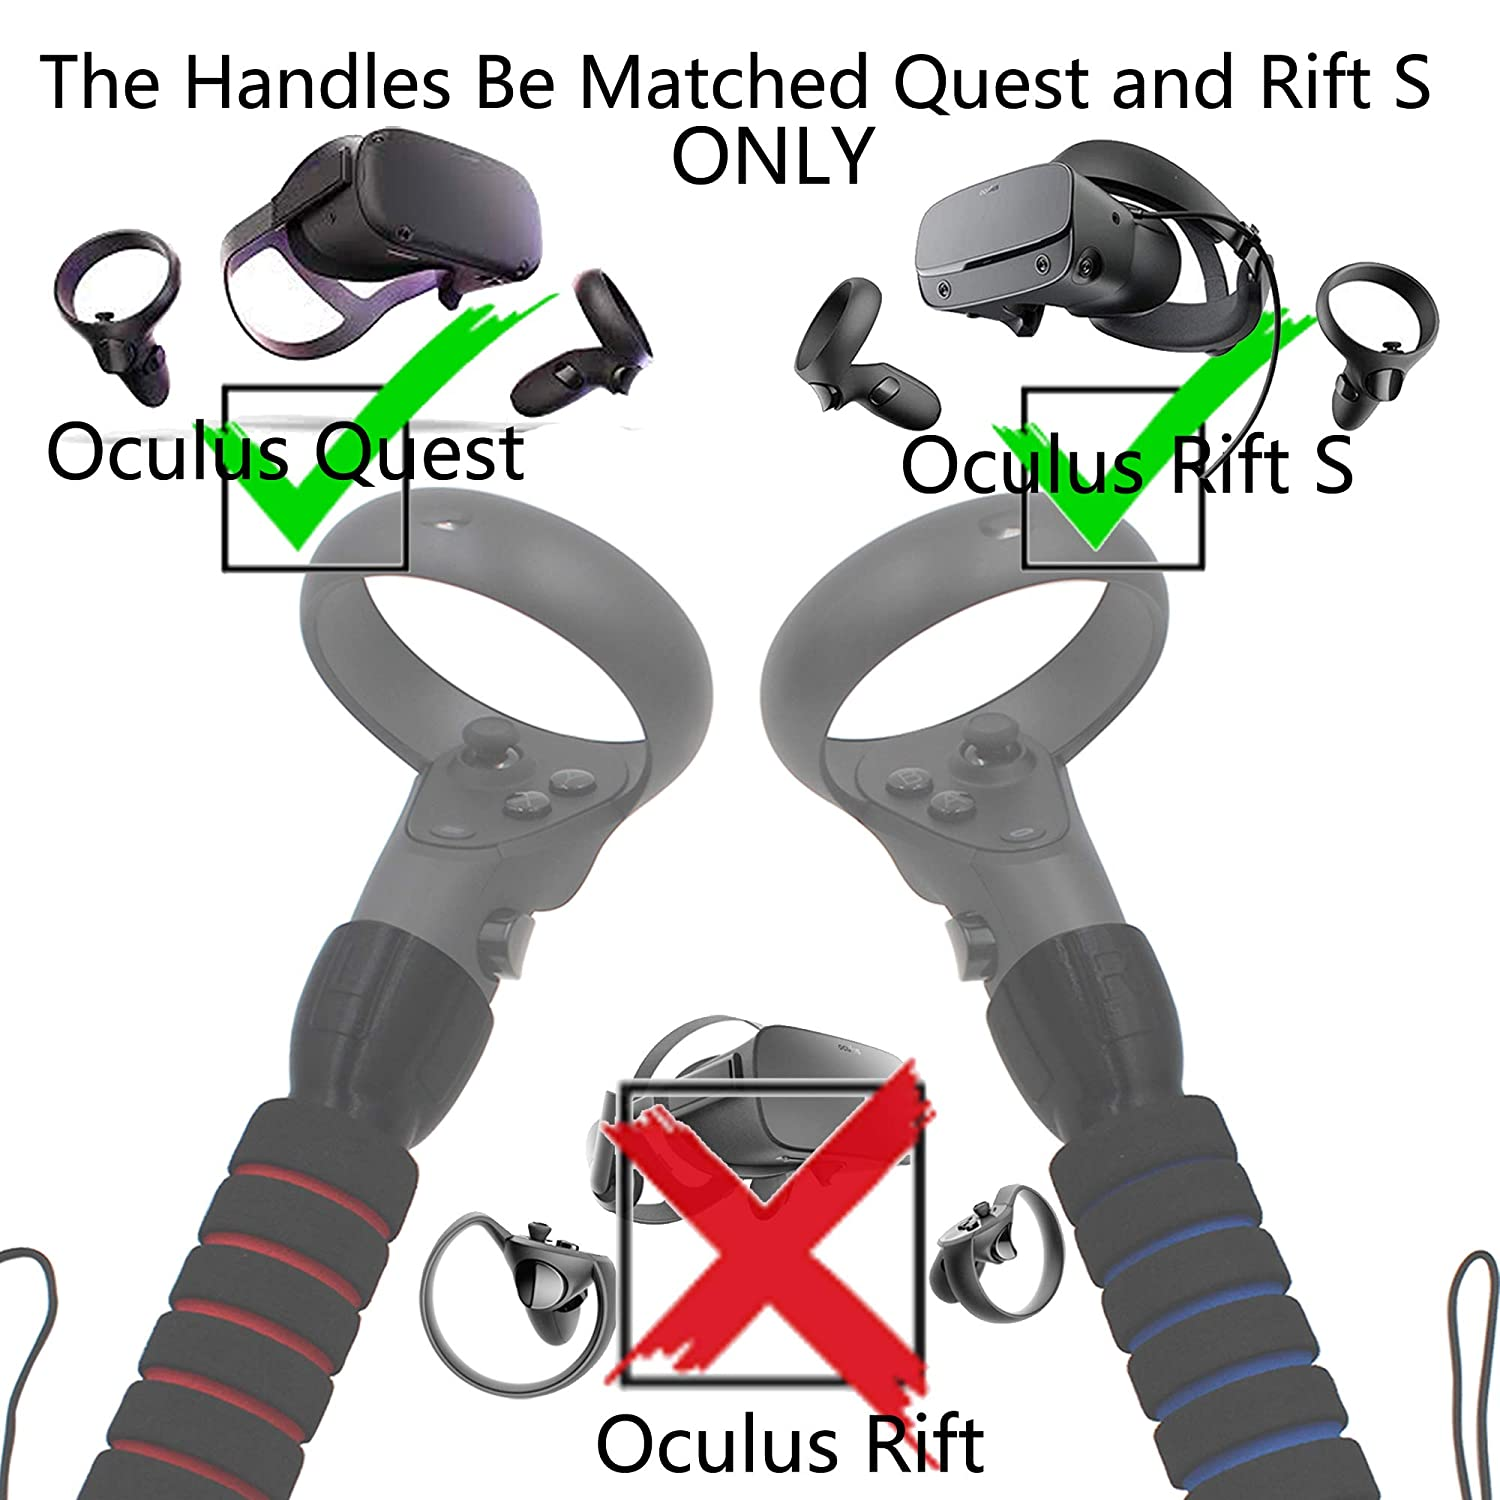 AMVR Dual Handles Gamepad for Oculus Quest or Rift S Controllers Playing Beat Saber Game